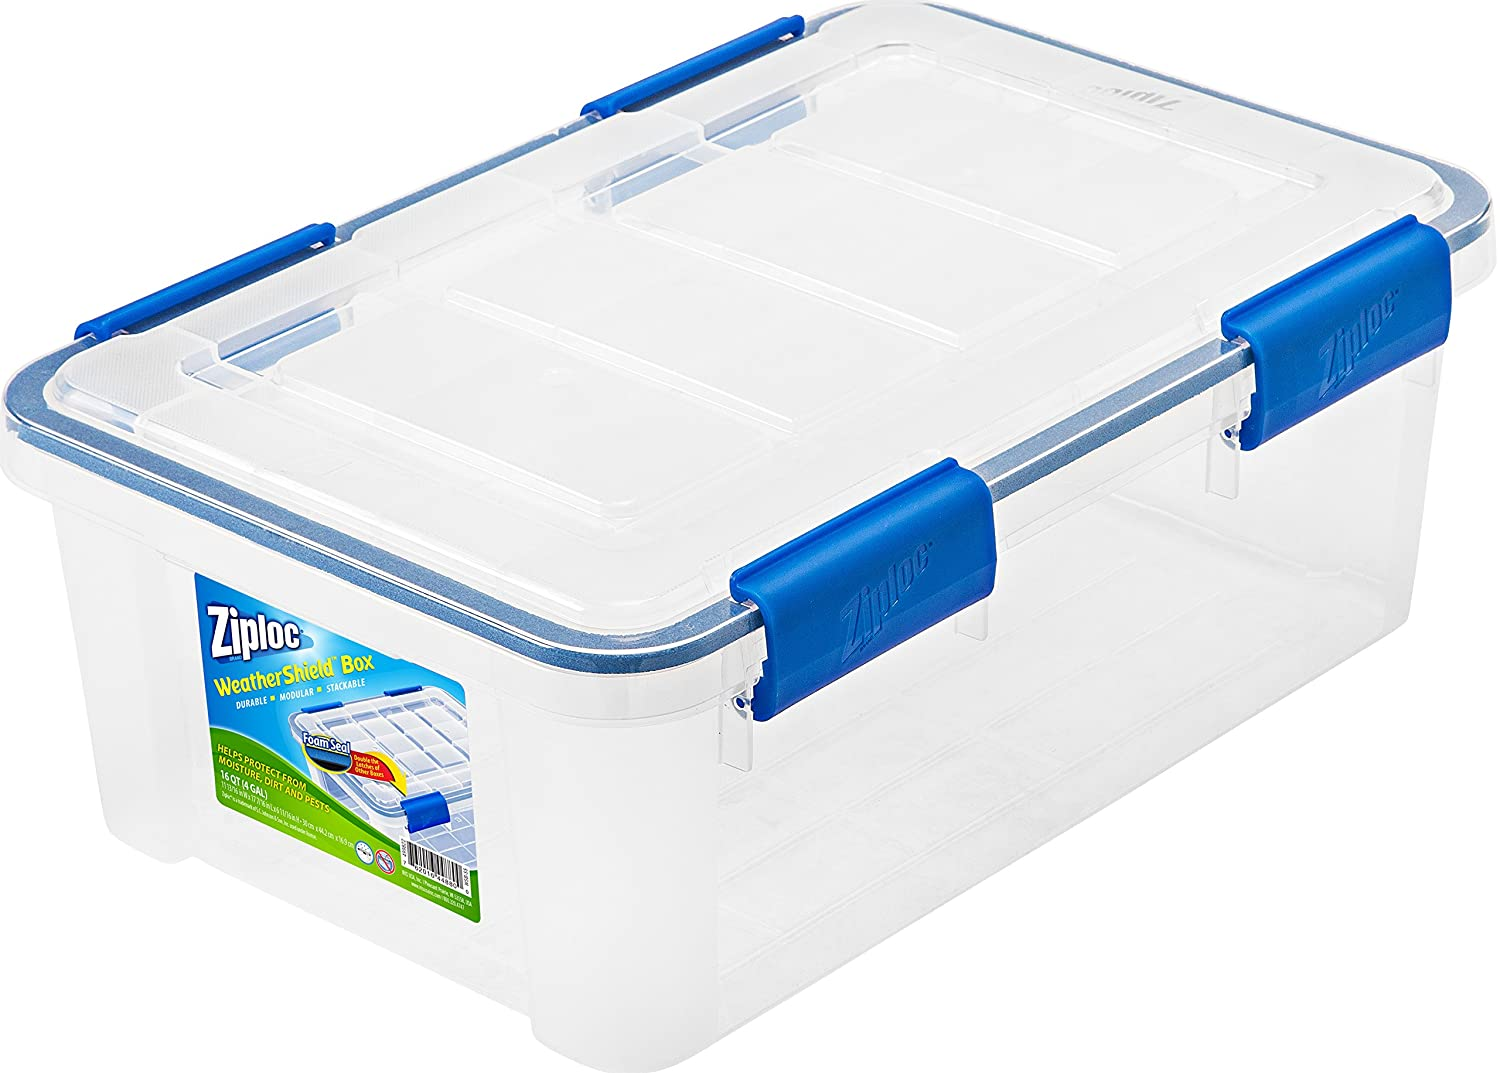 Ziploc WeatherShield 60 Quart Storage Box, Clear IRIS USA Inc. 394008